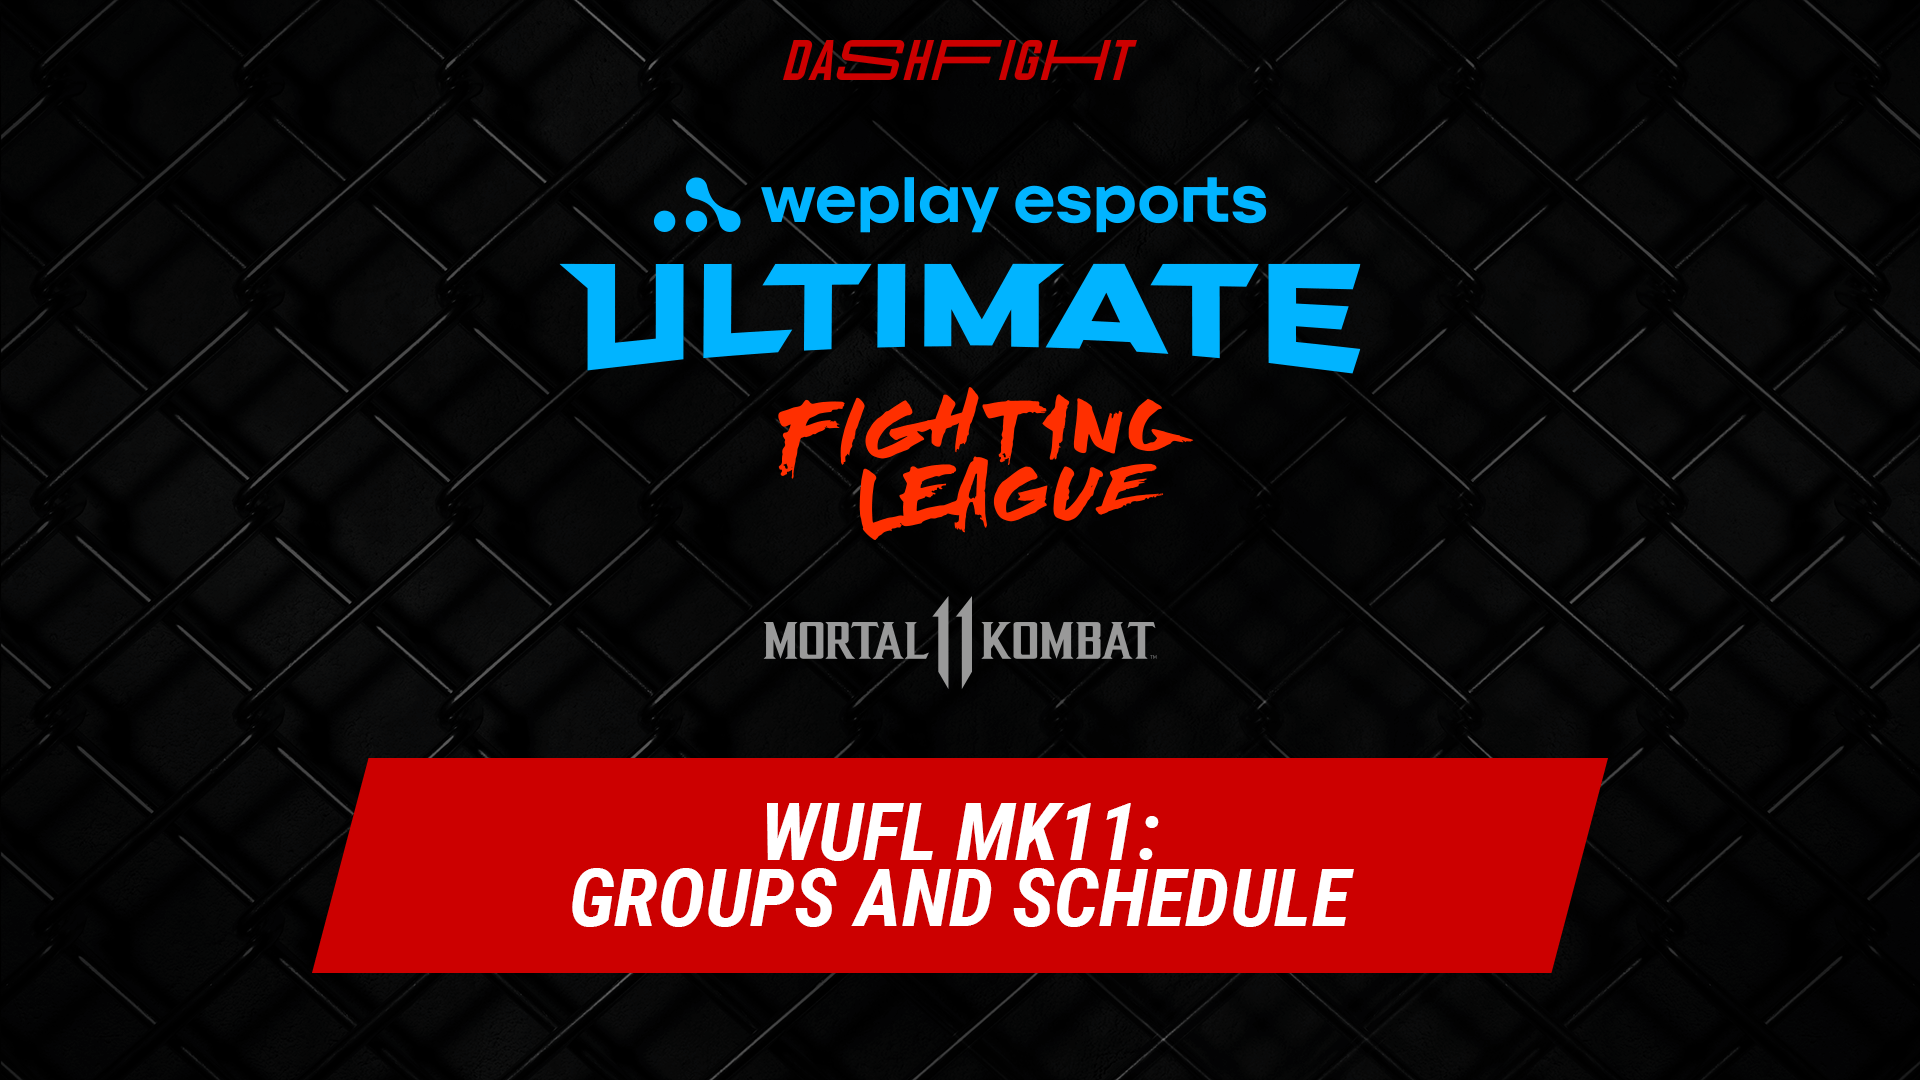 WUFL MK11: Groups and Schedule Revealed